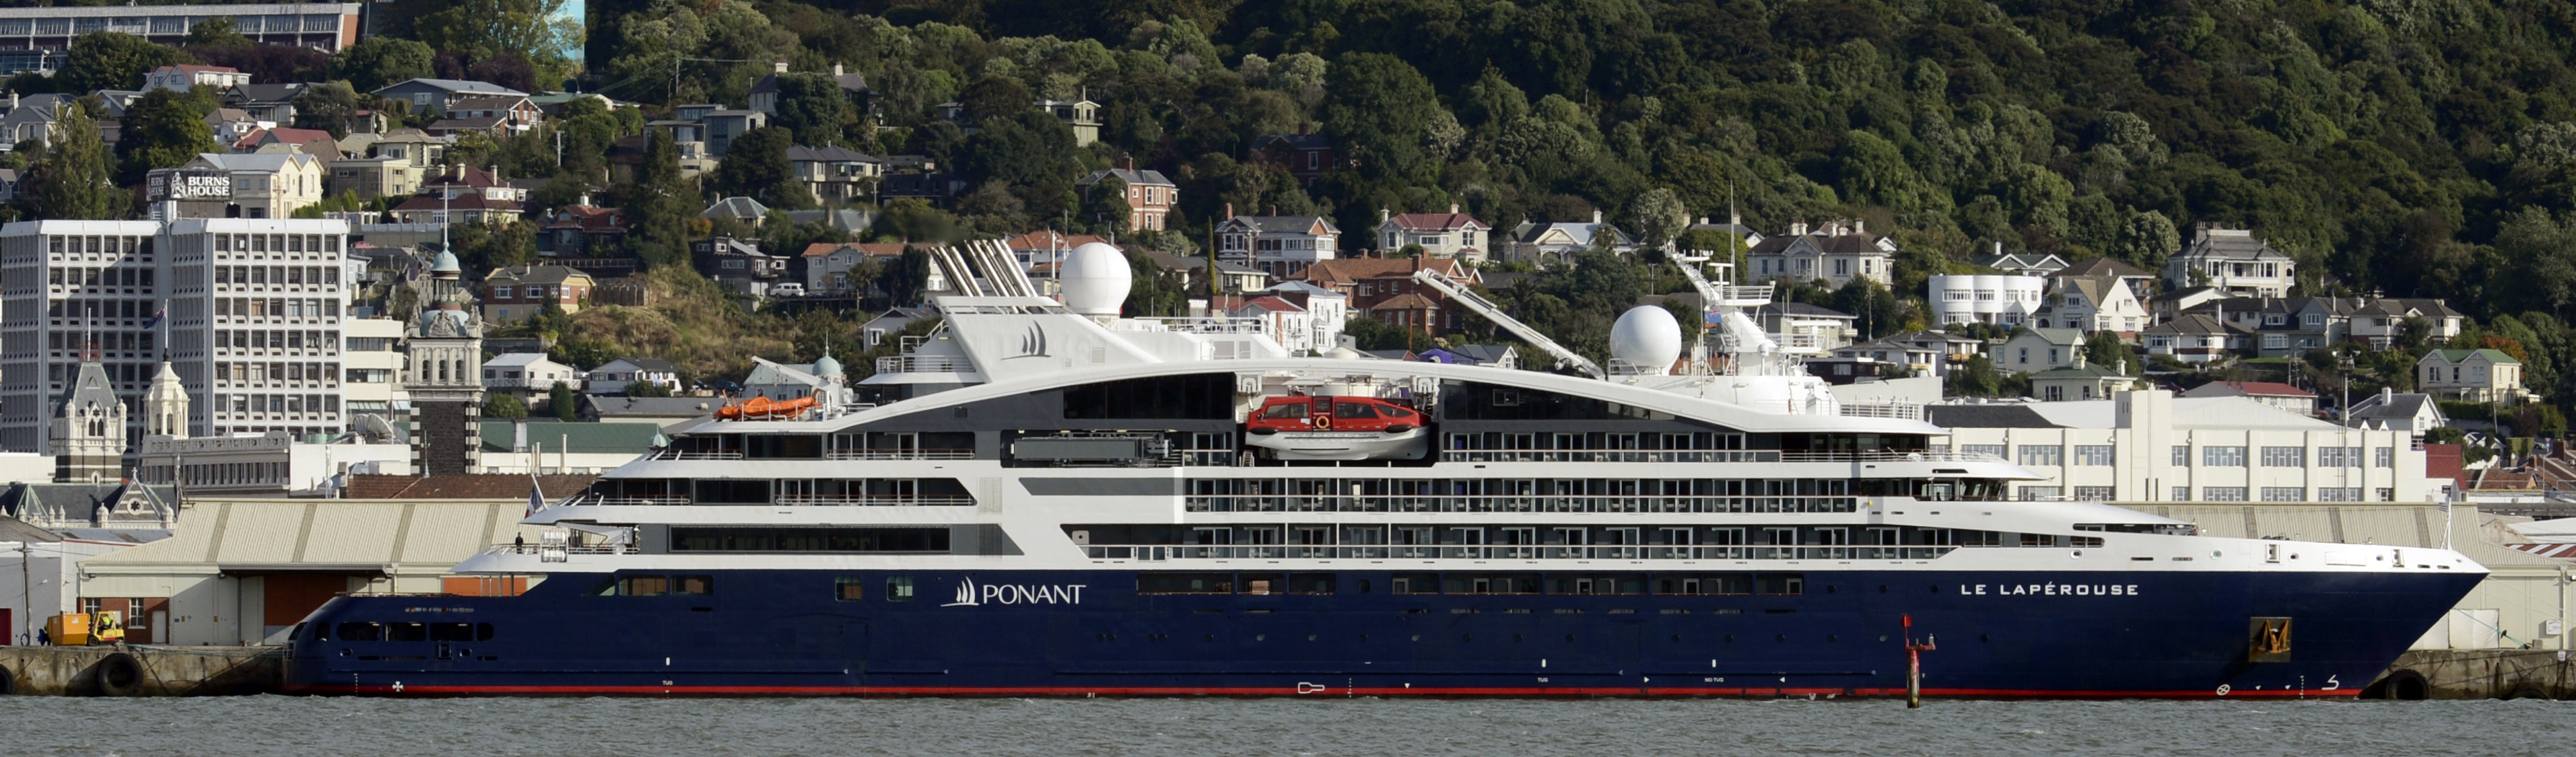 The visit by Le Laperouse to Dunedin in March this year marked the first time 100 cruise ships...